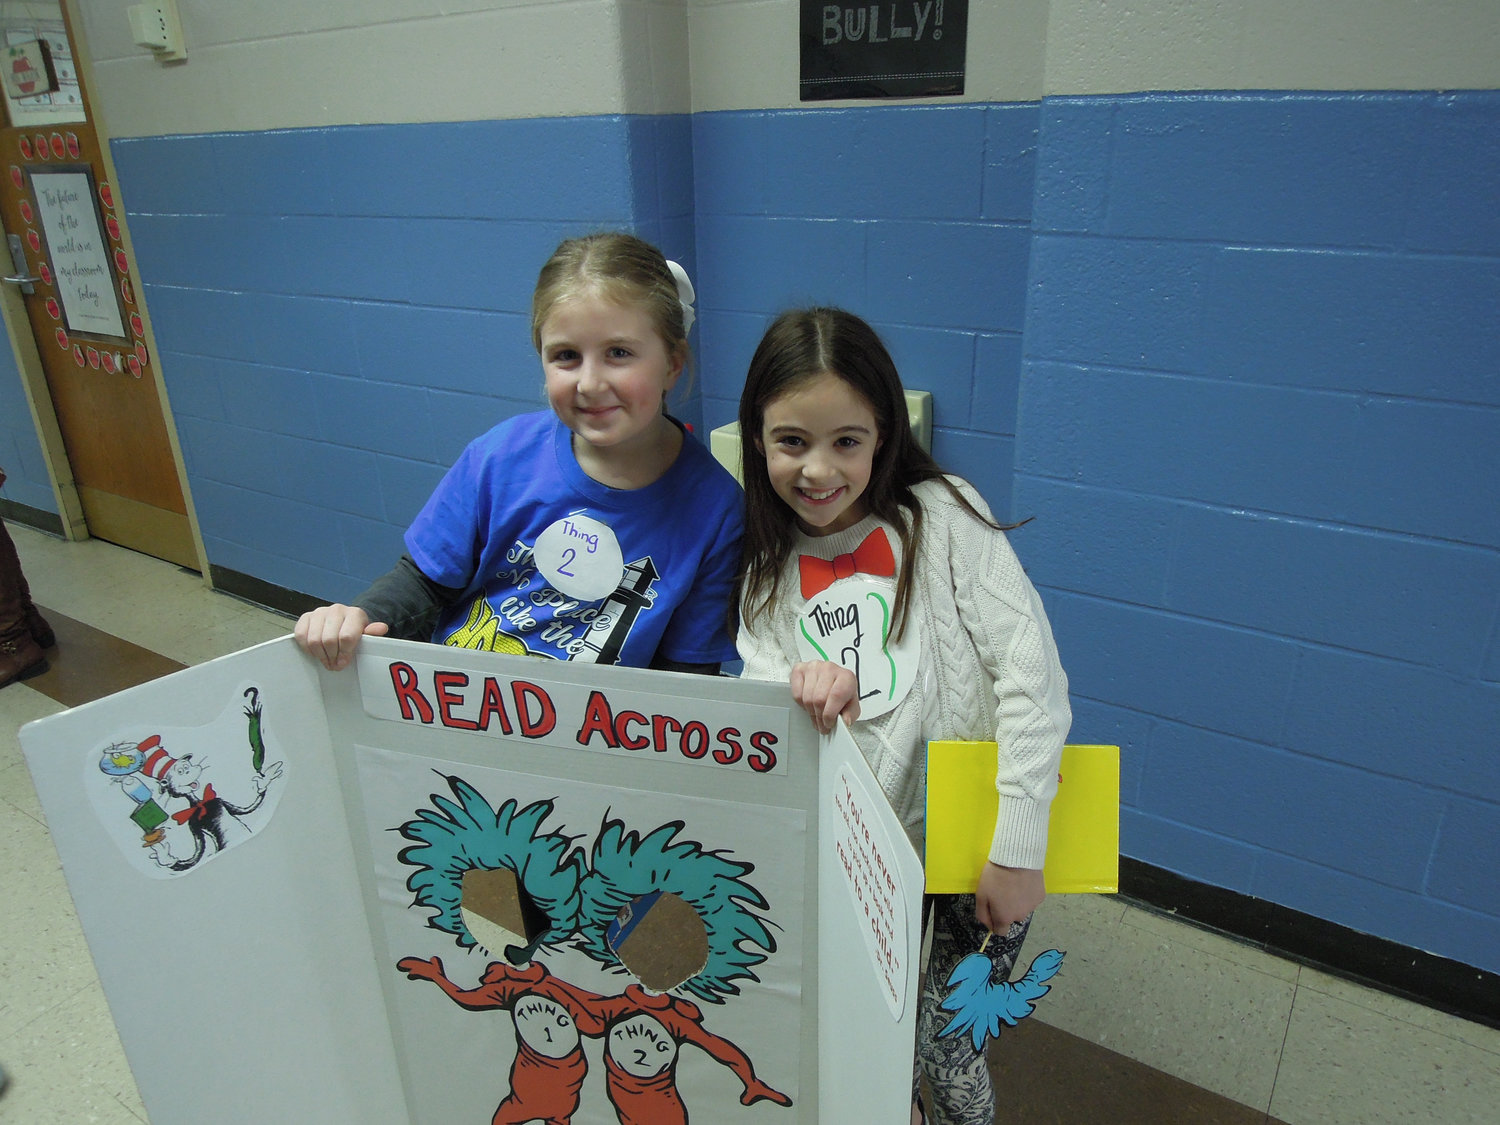 Seaford readers Jillian Mooney, left, and Giuliana Viggiano displayed their sign promoting Read Across America Day on March 1.